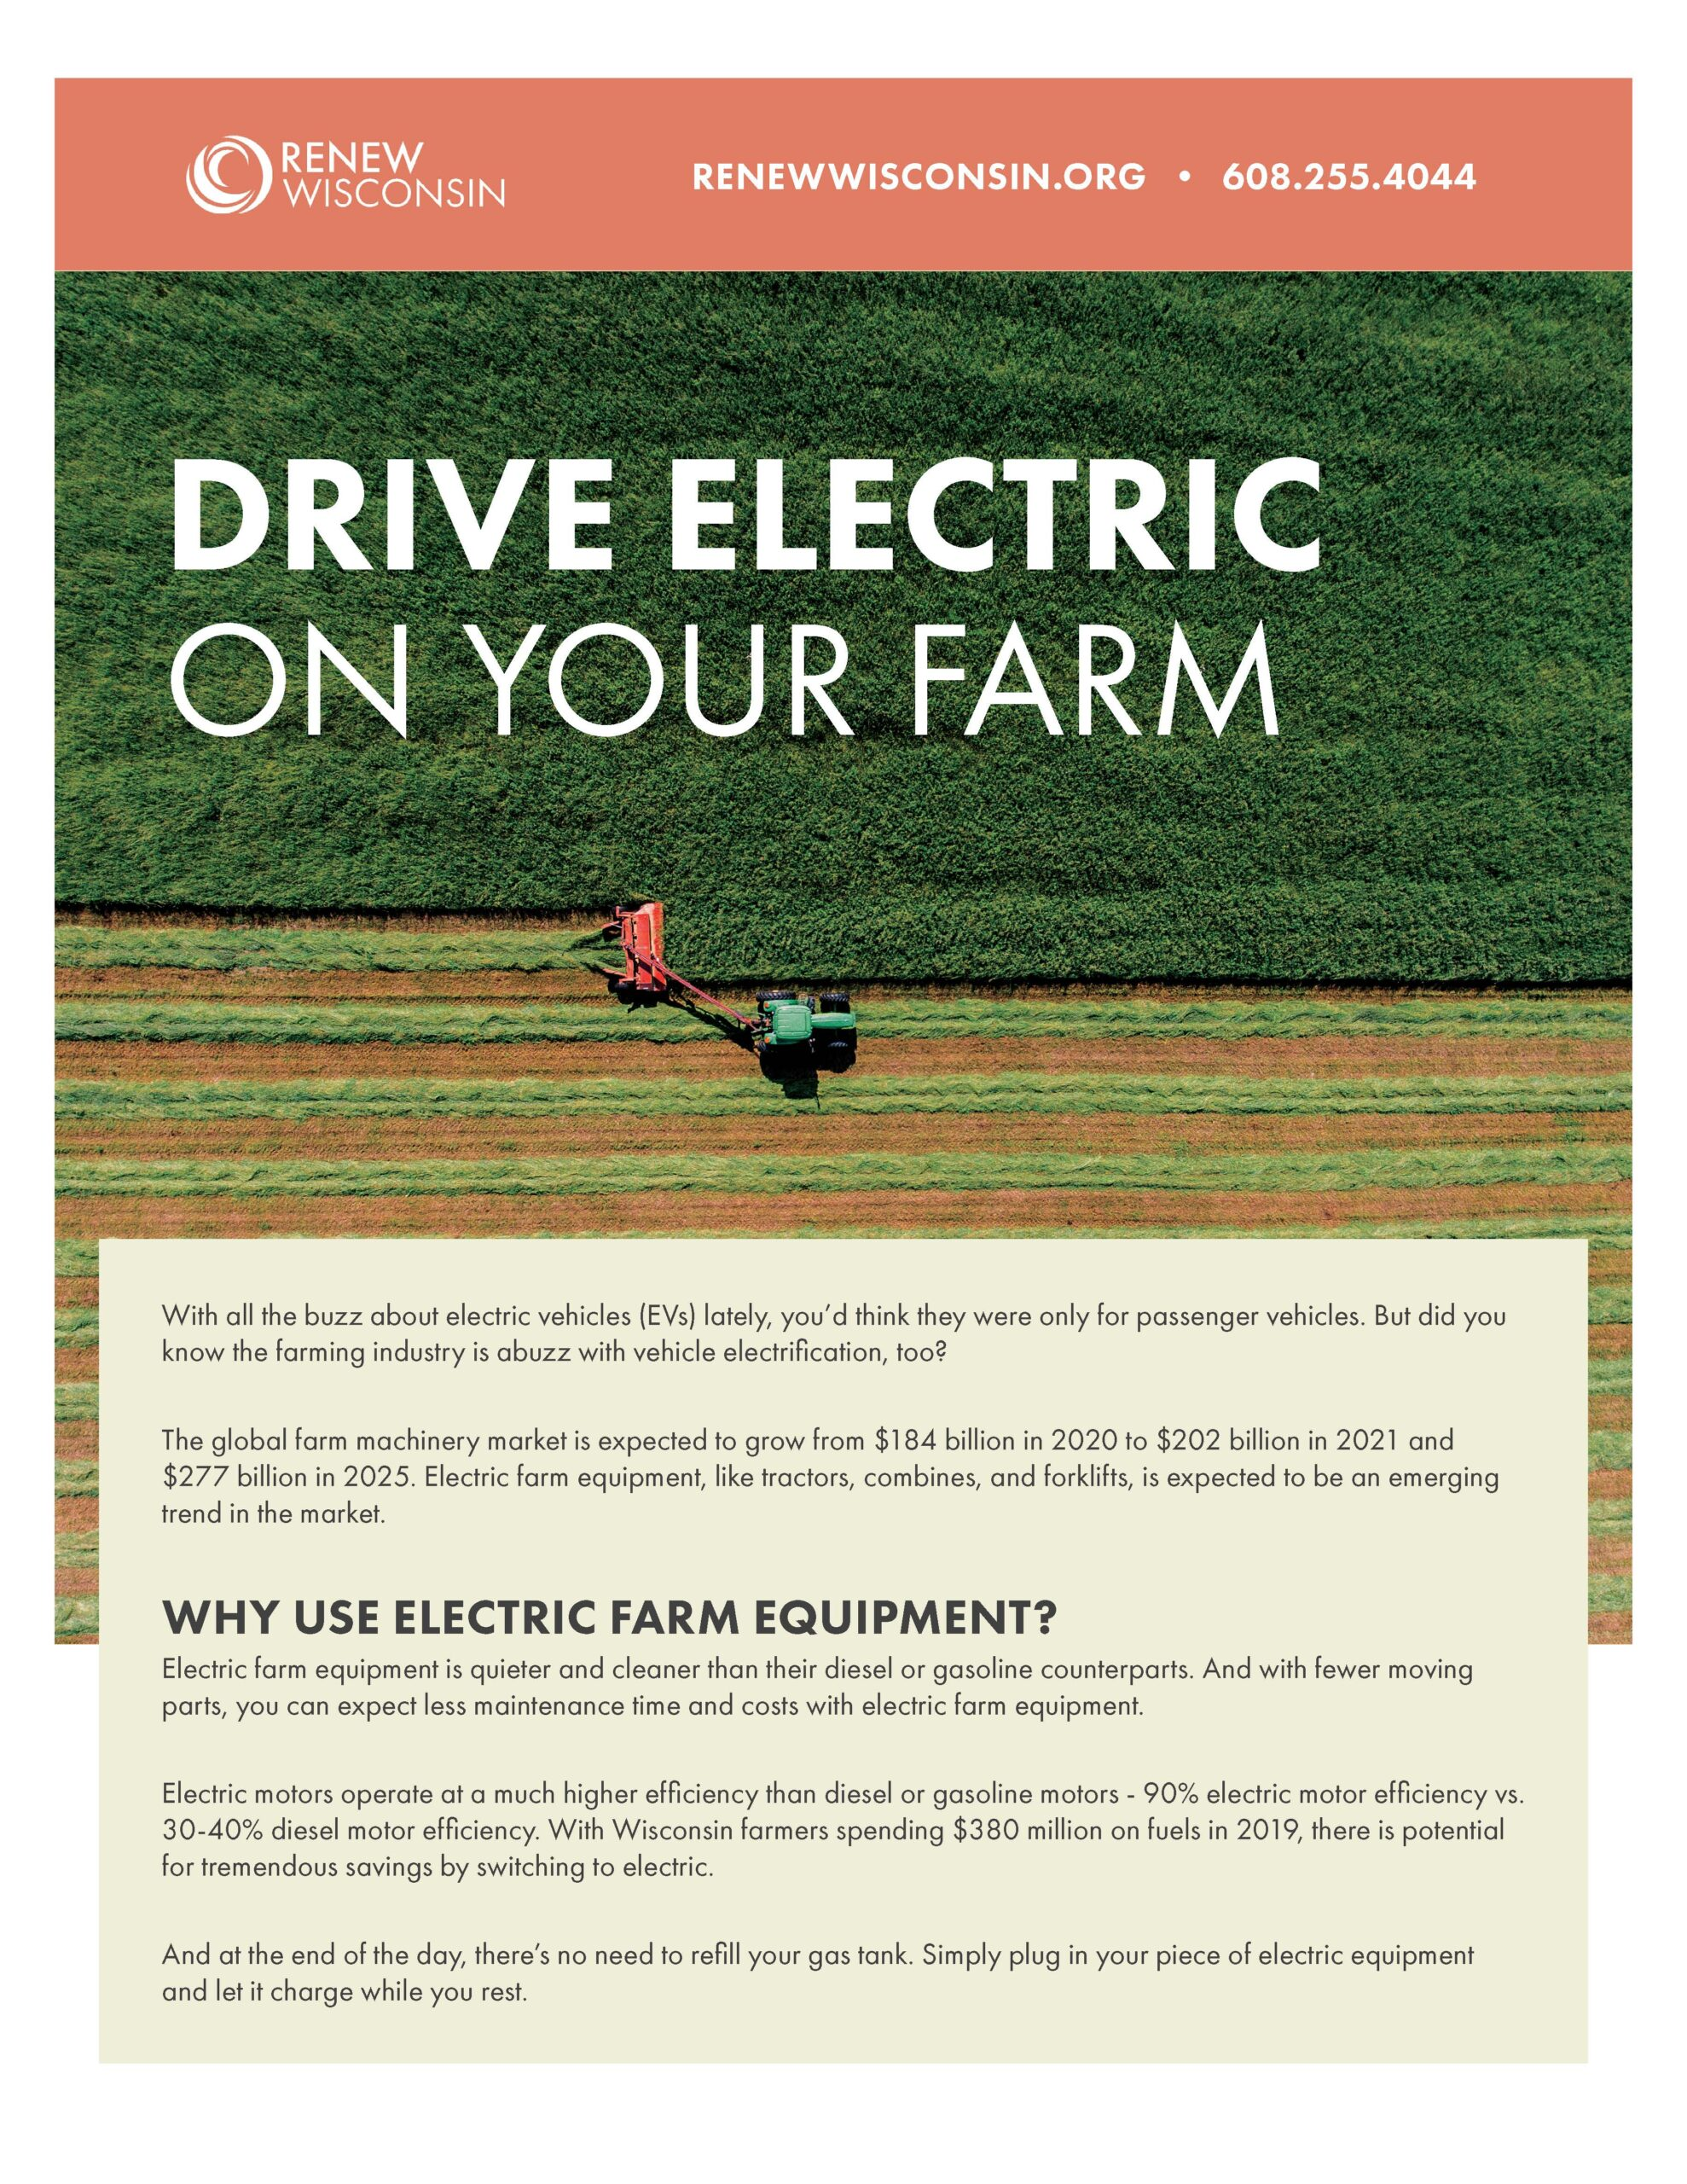 Electric Vehicles and Farms